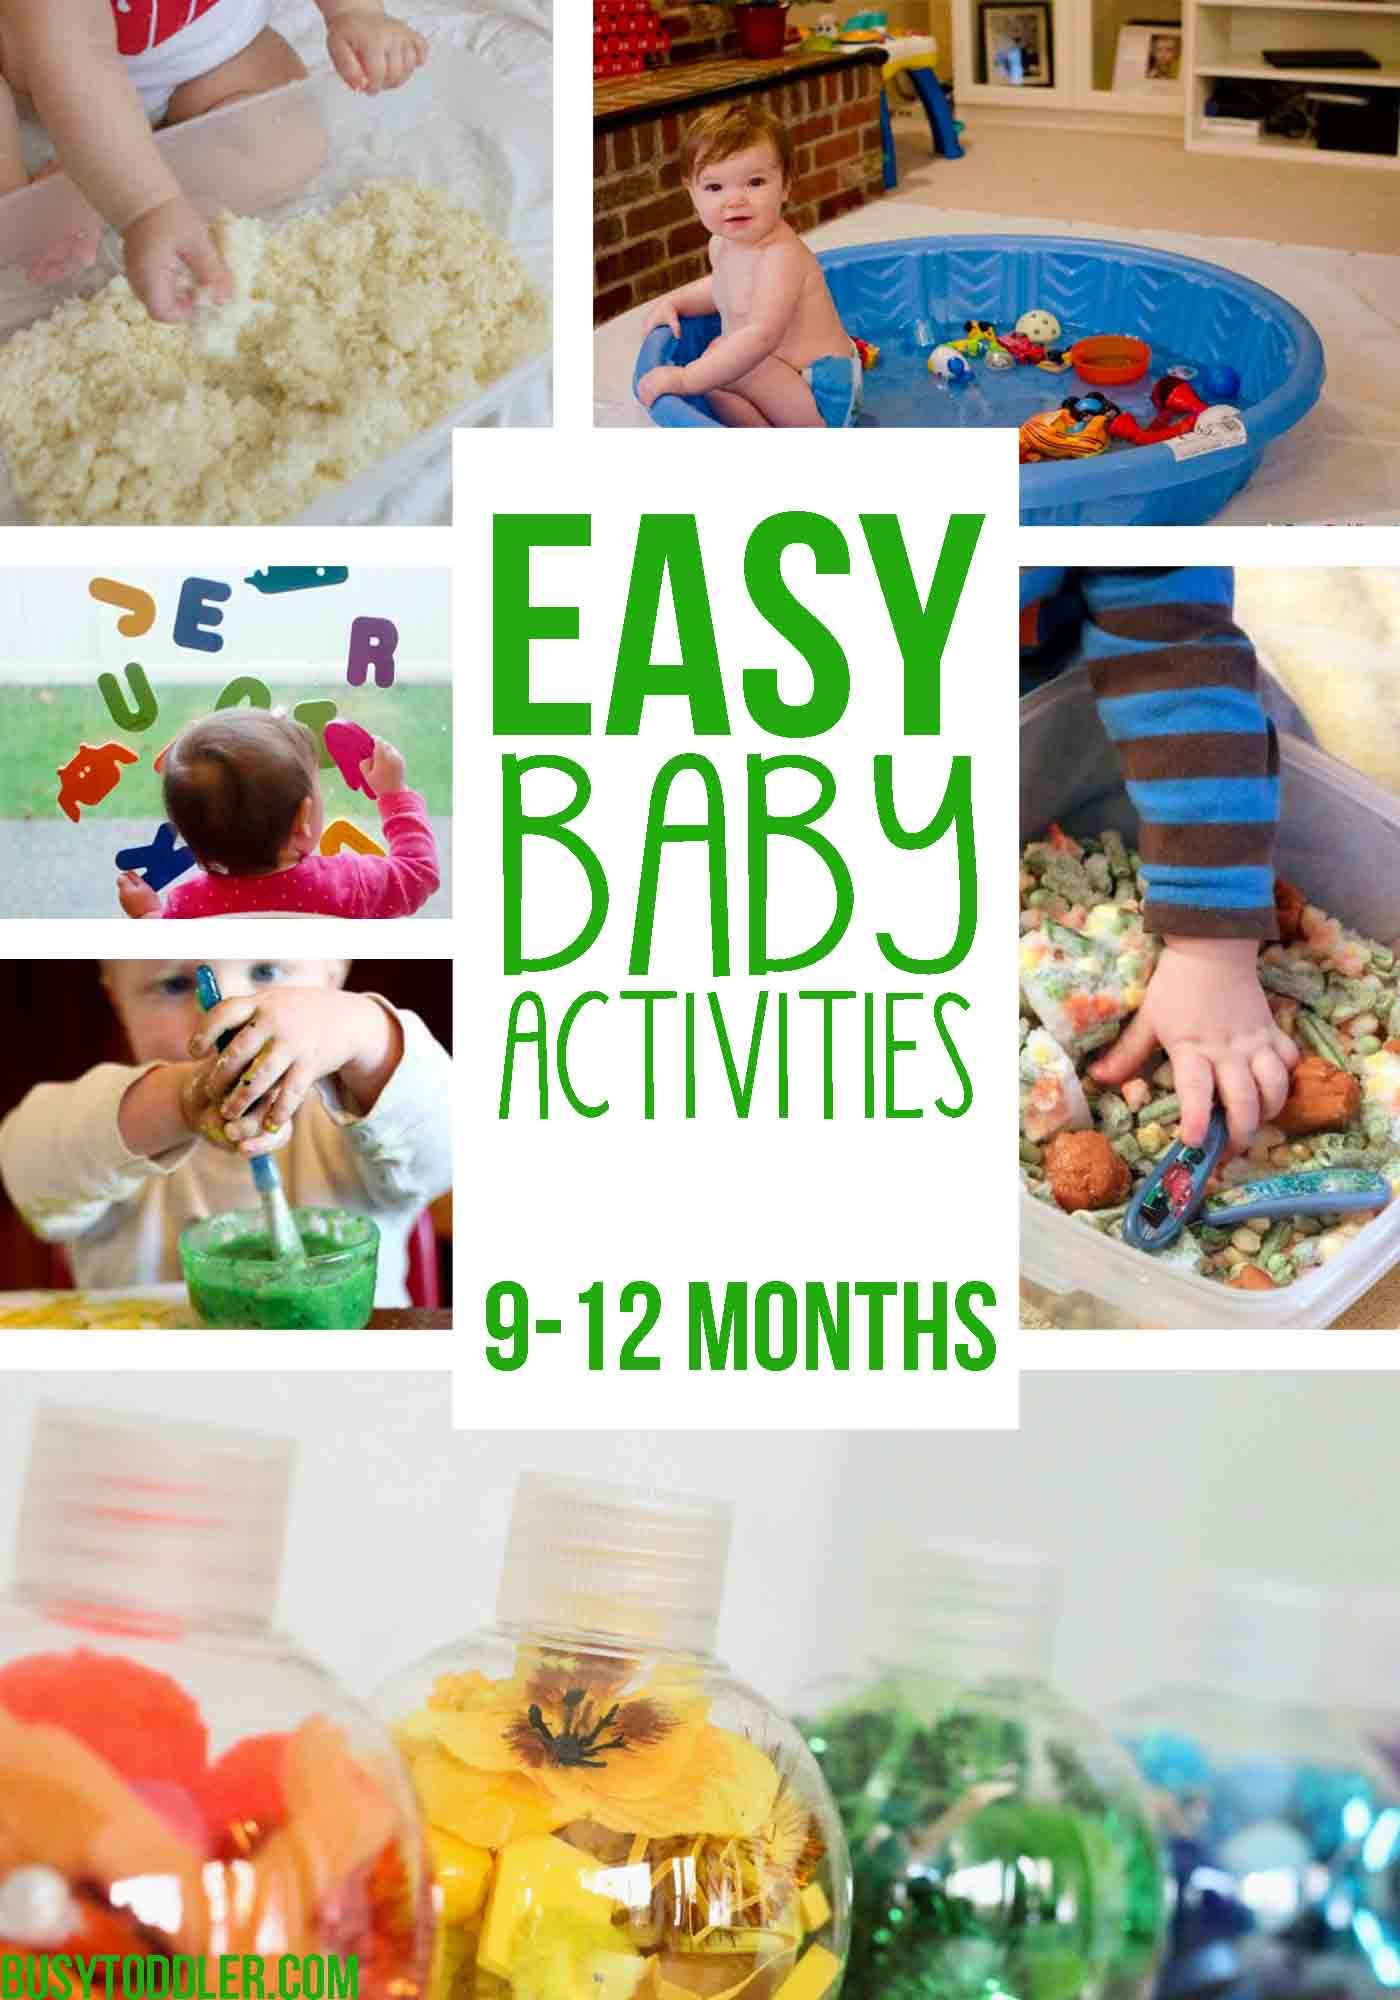 10 games your baby will love: 7 to 9 months old | Video ...